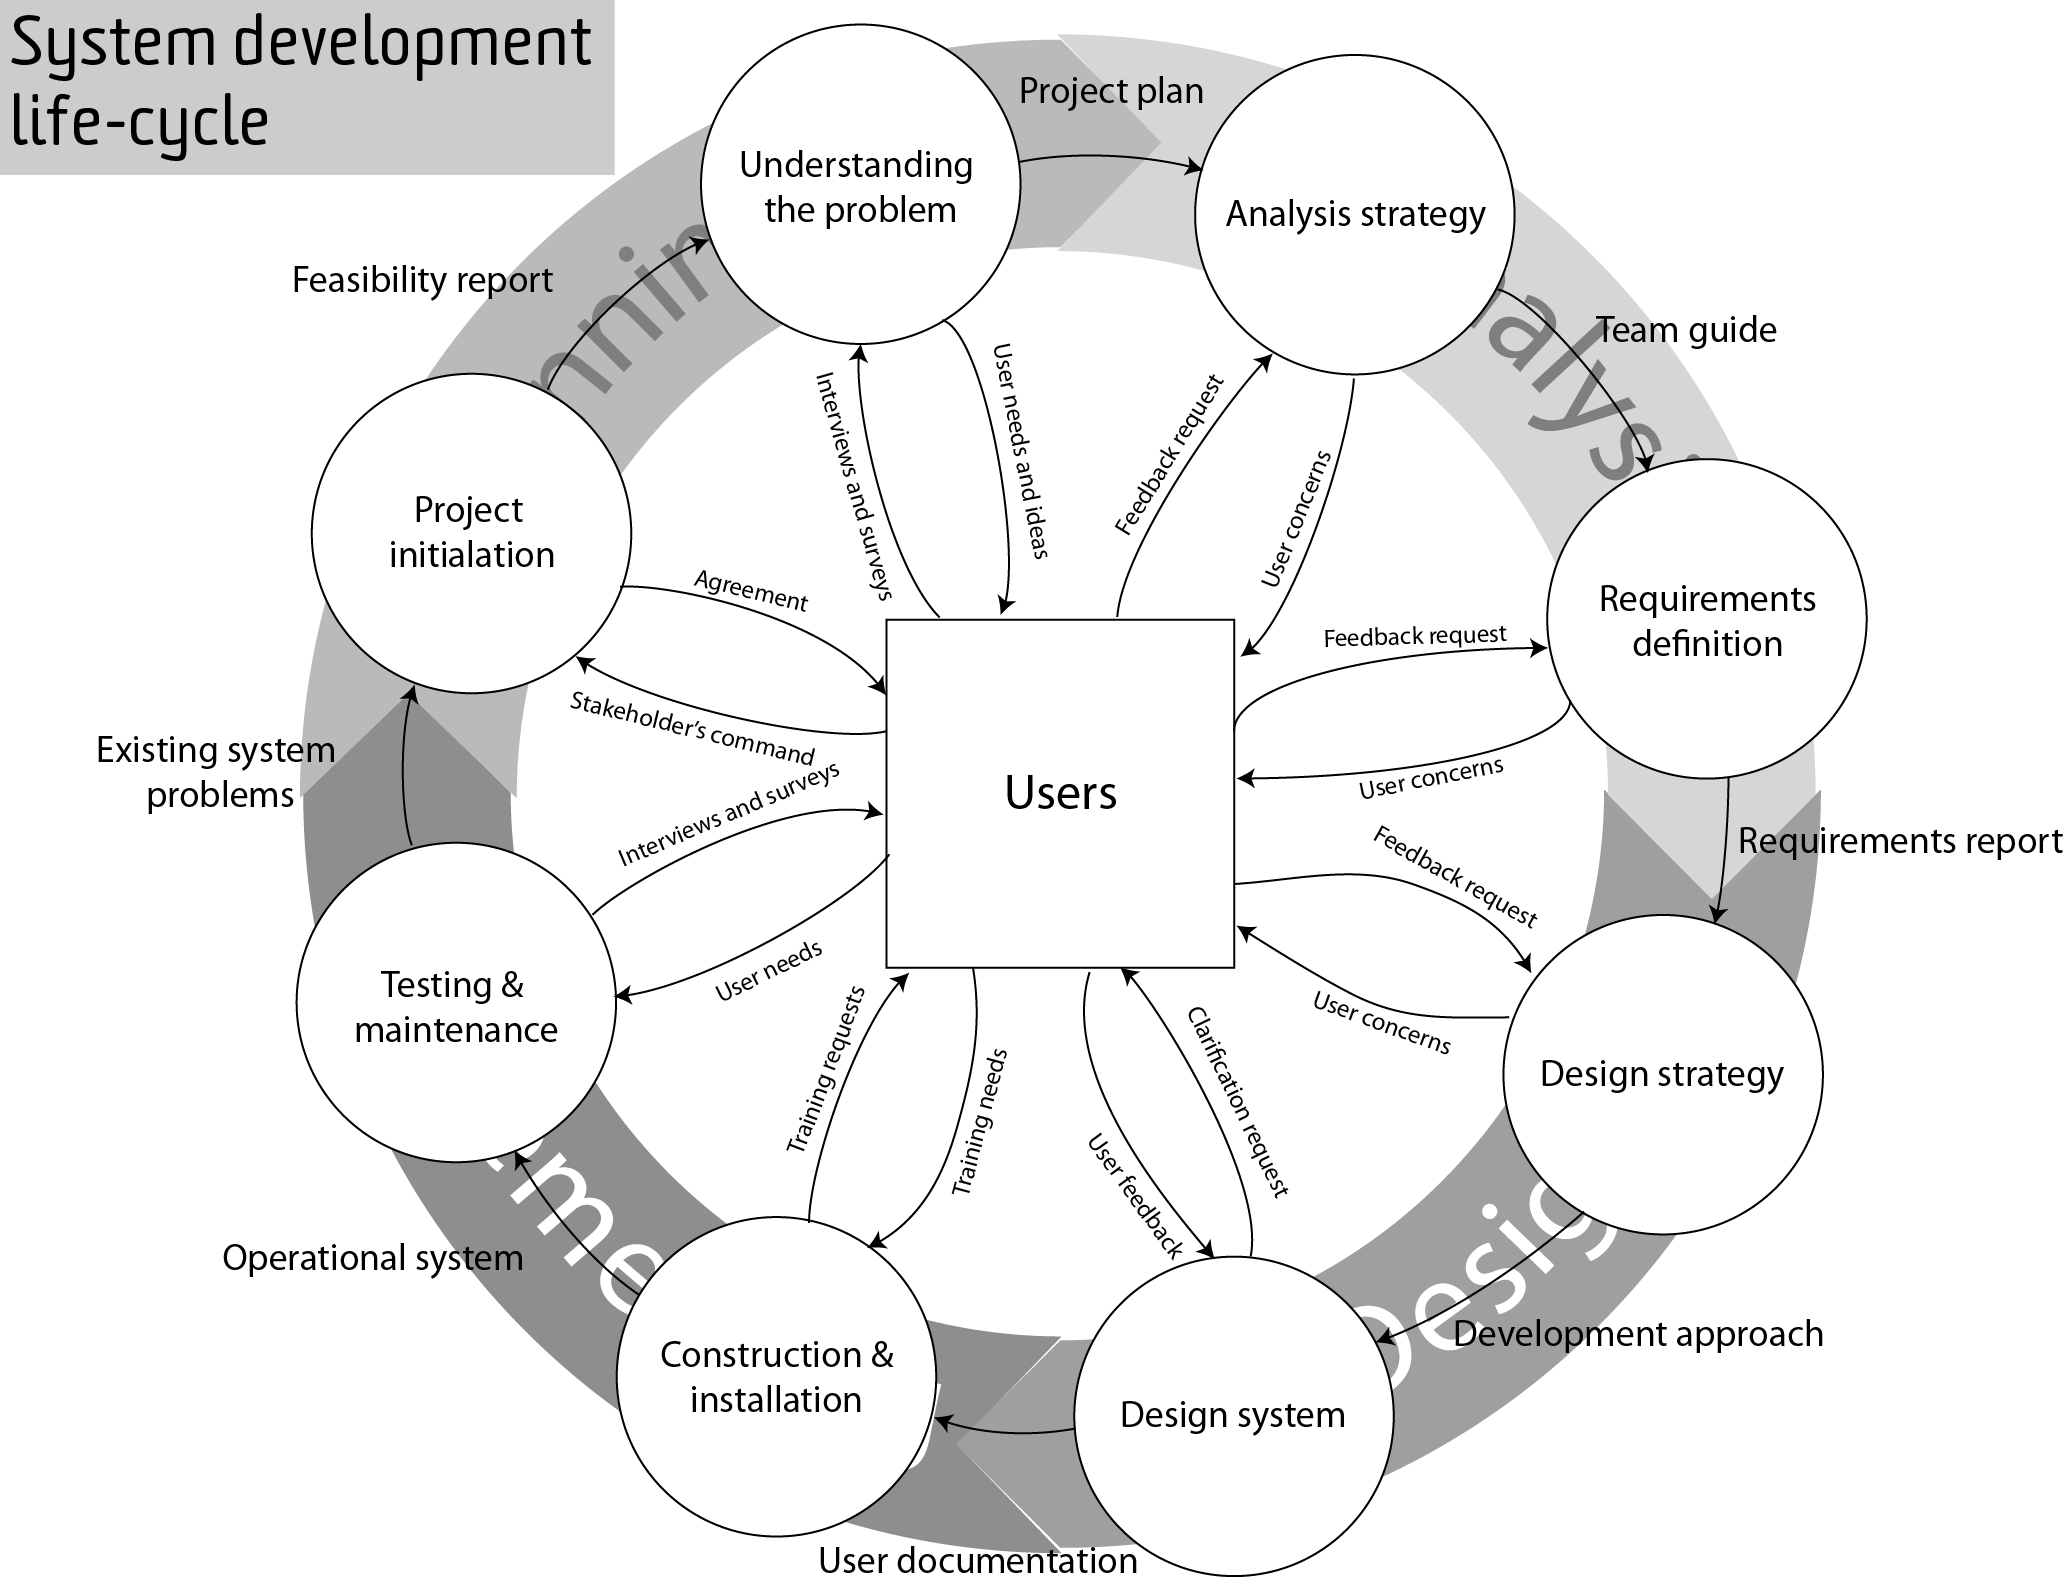 Filesystem development life cycle diagramg wikimedia commons filesystem development life cycle diagramg pooptronica Choice Image